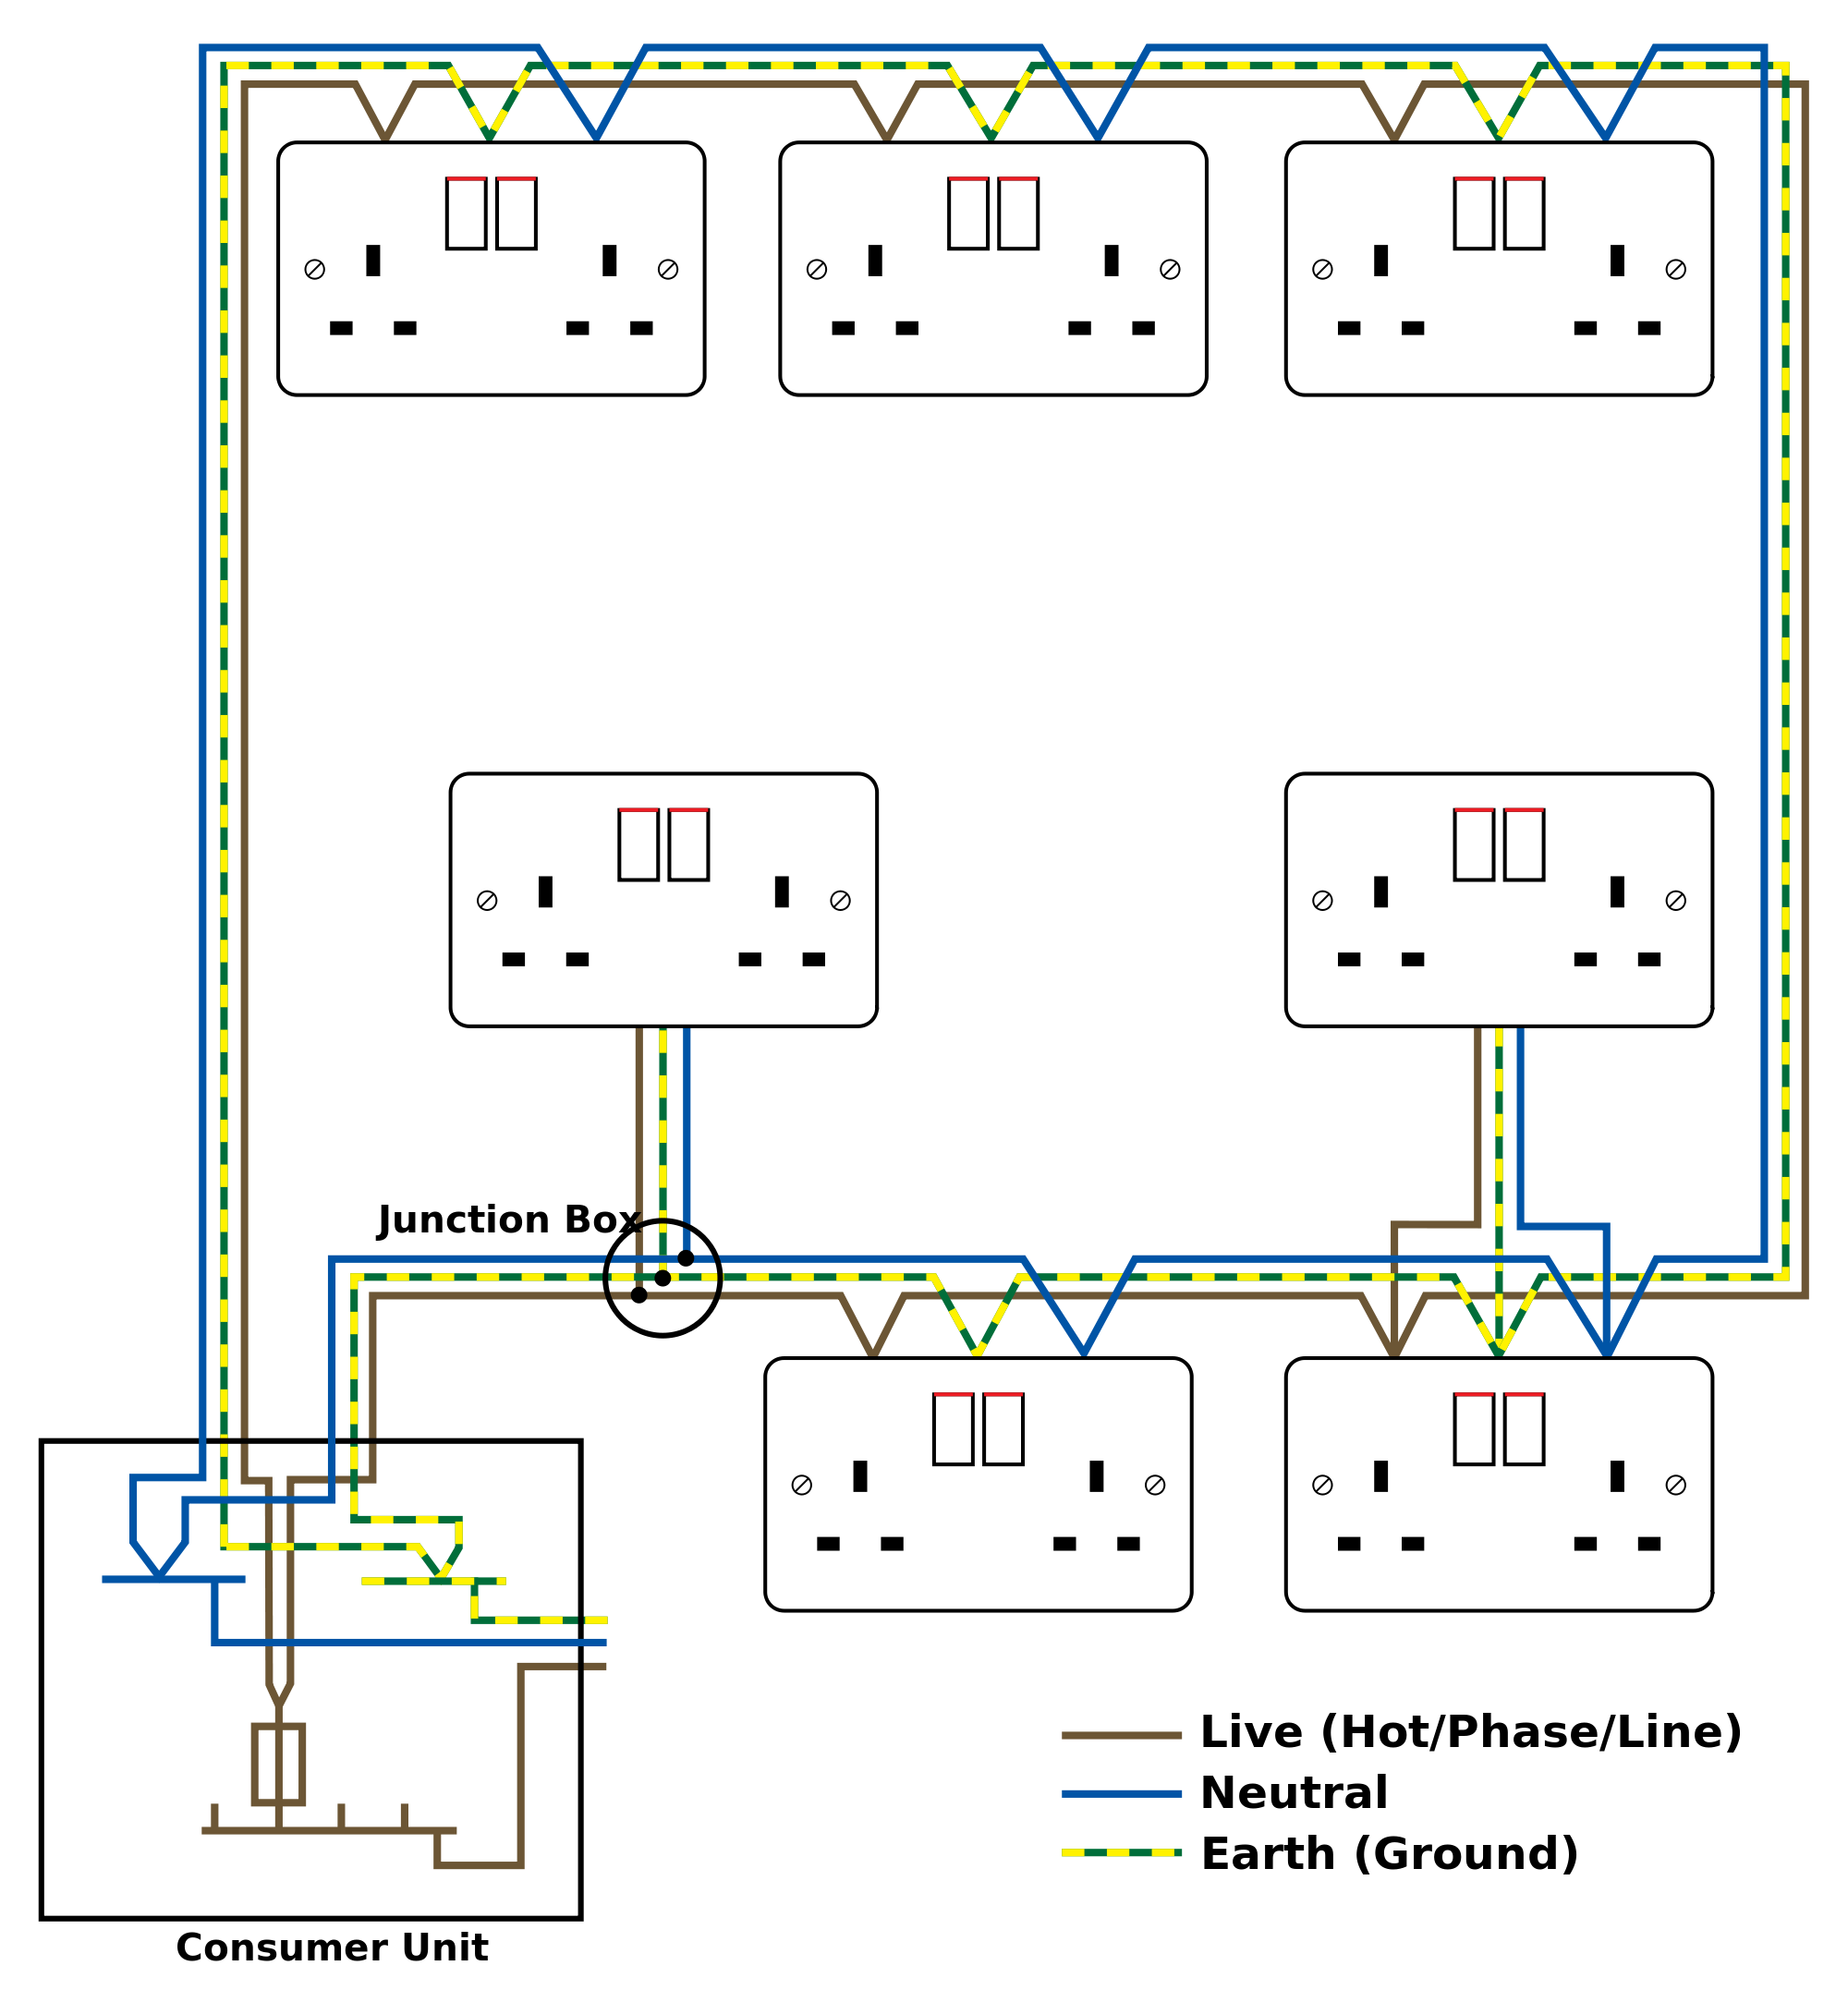 Wall Socket Wiring Diagram | Wiring Diagrams on